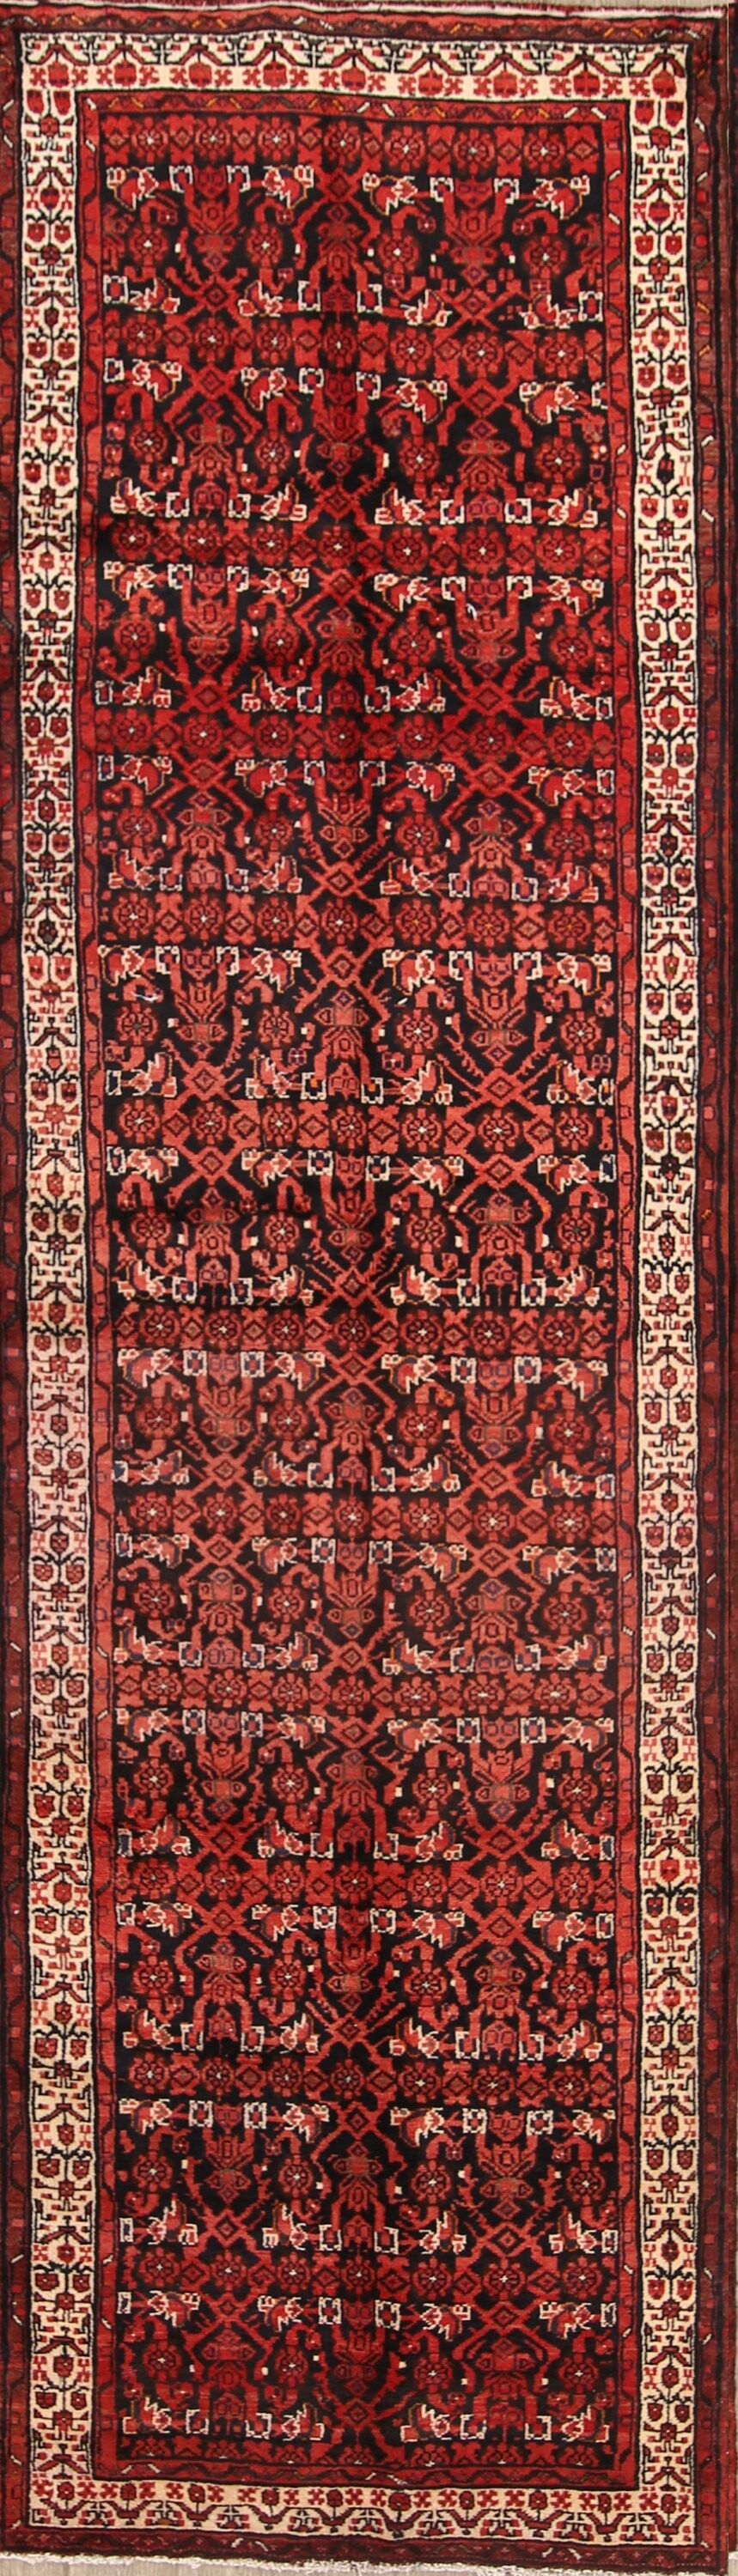 One-of-a-Kind All Over Floral Bakhtiari Persian Hand-Knotted 3'10